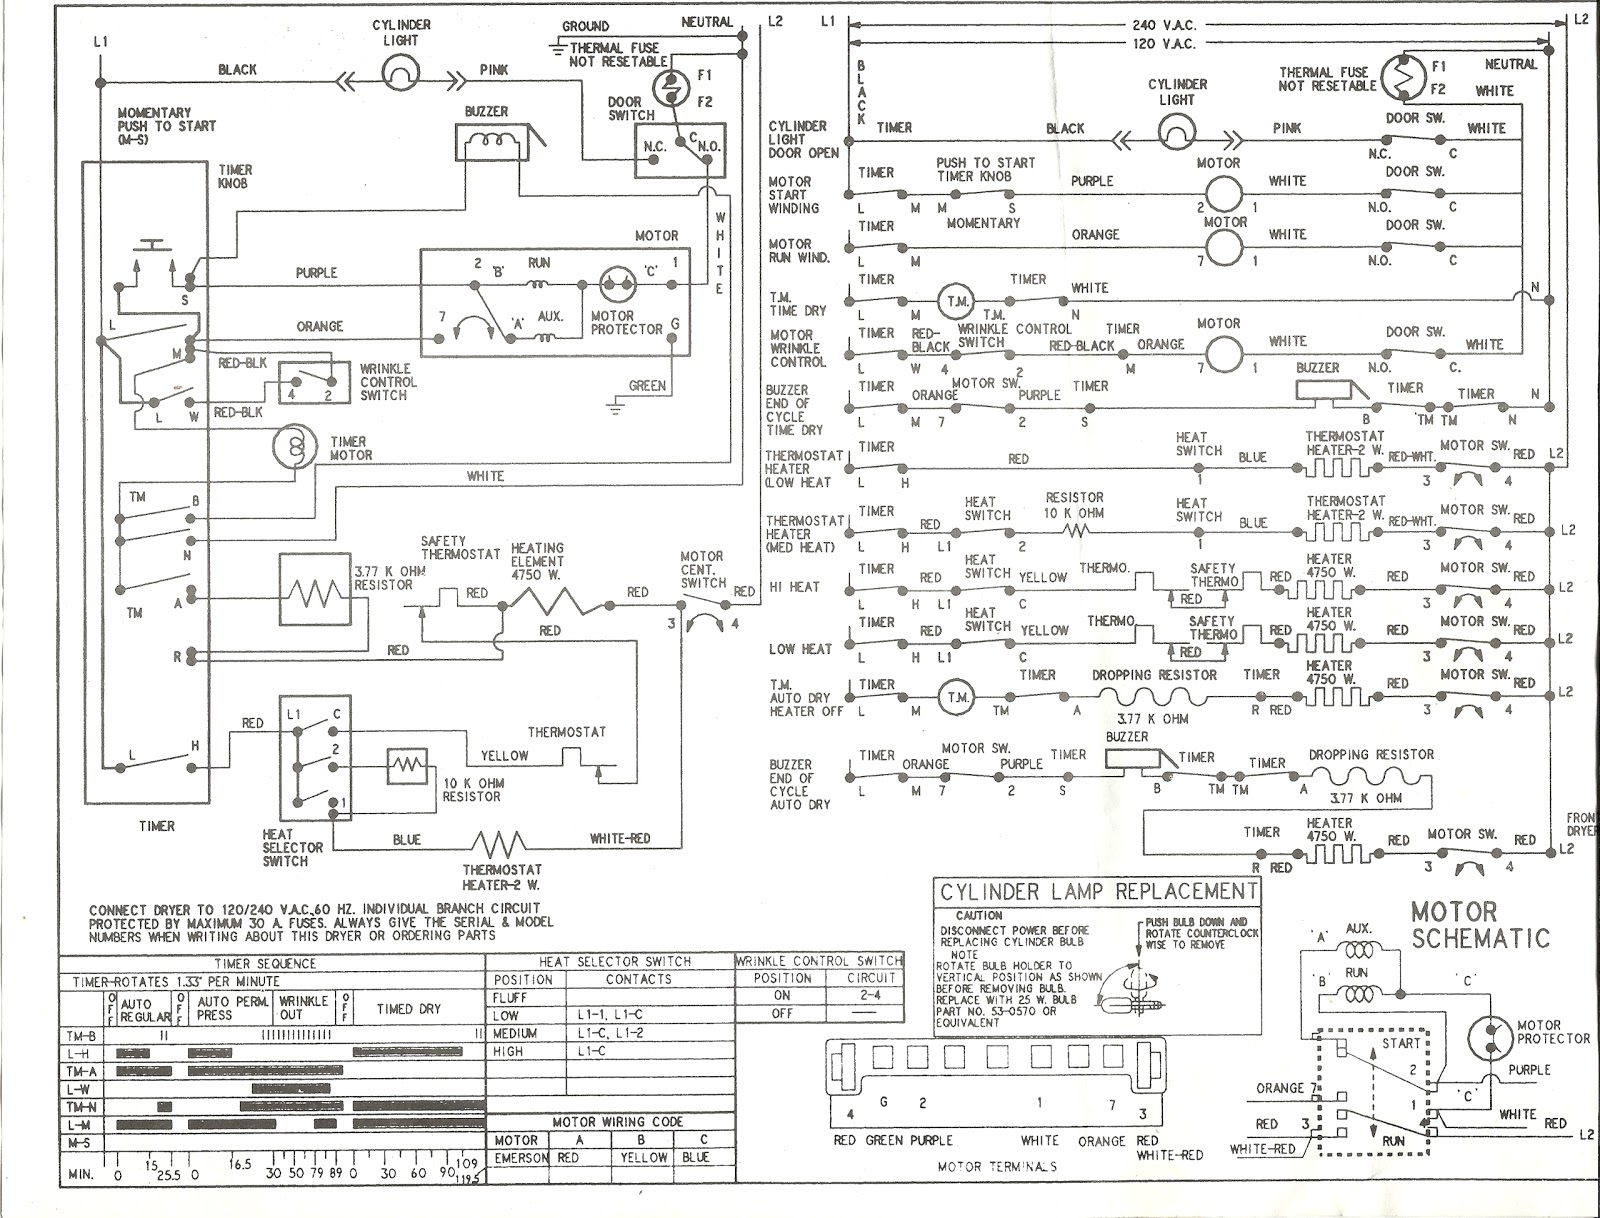 kenmore washer wiring diagram on wiring diagram parts wiring for kenmore 80 series washer parts diagram wiring diagram for whirlpool washer on wiring download wirning  at reclaimingppi.co